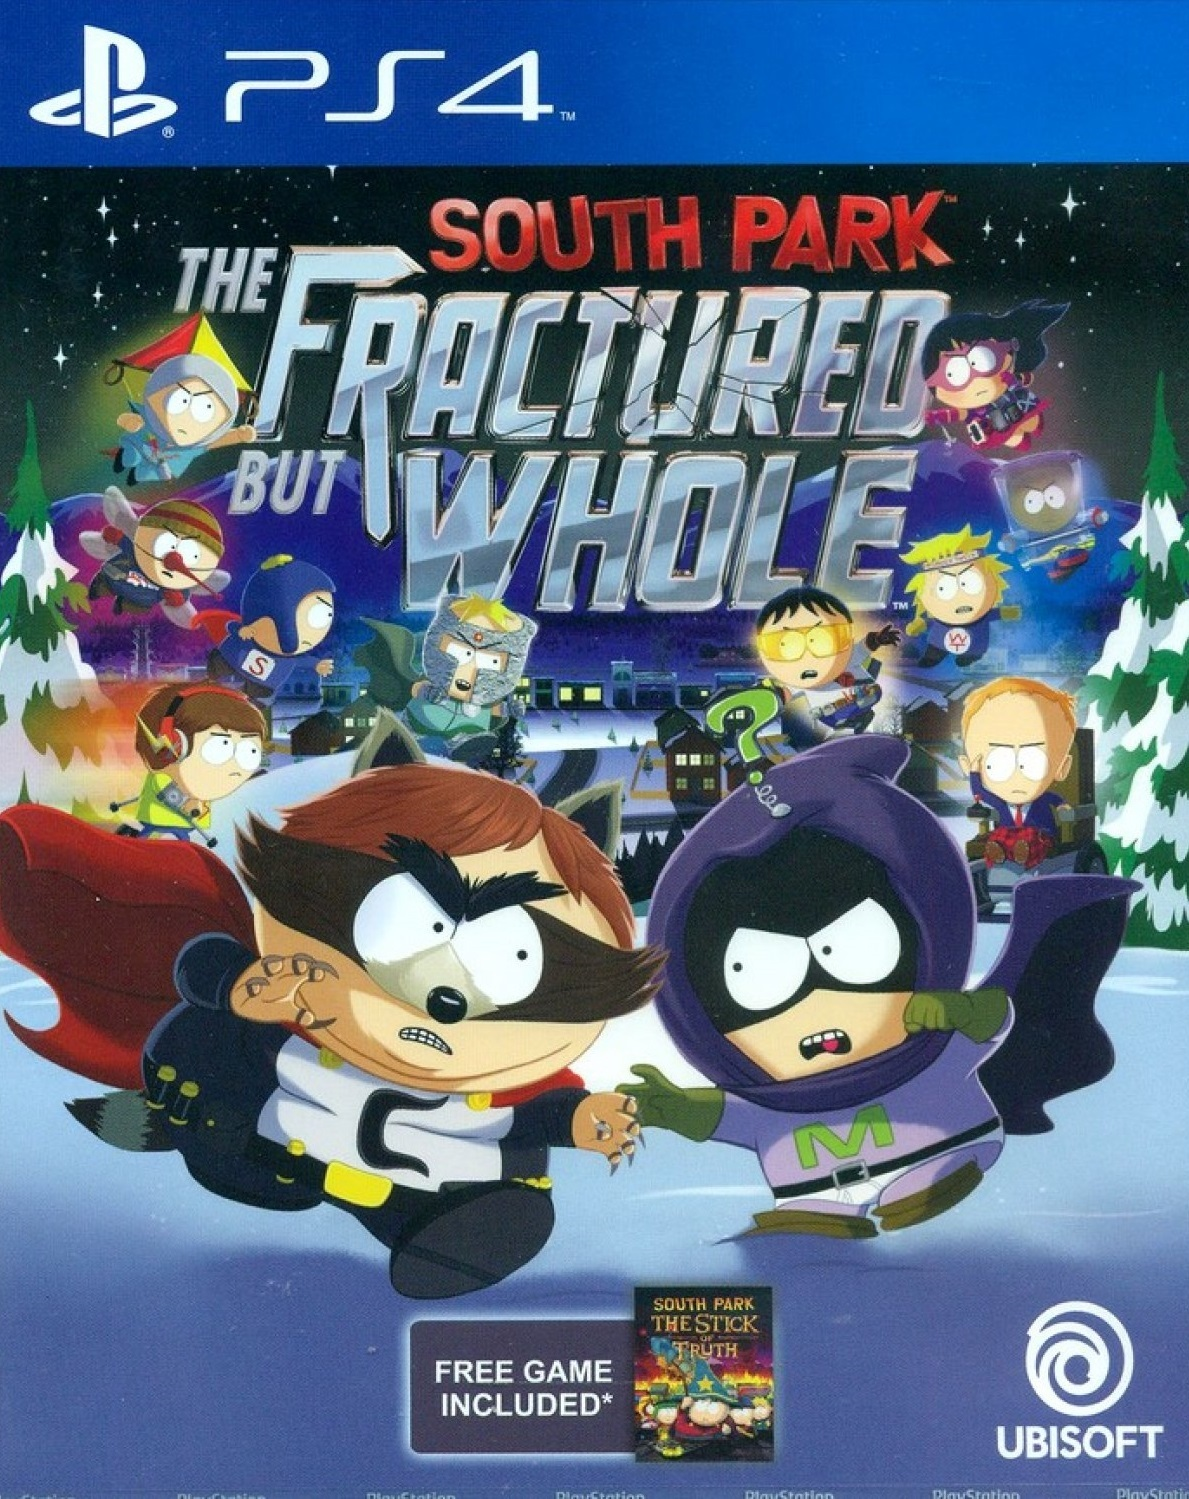 south-park-the-fractured-but-whole-english-478871.19.jpg